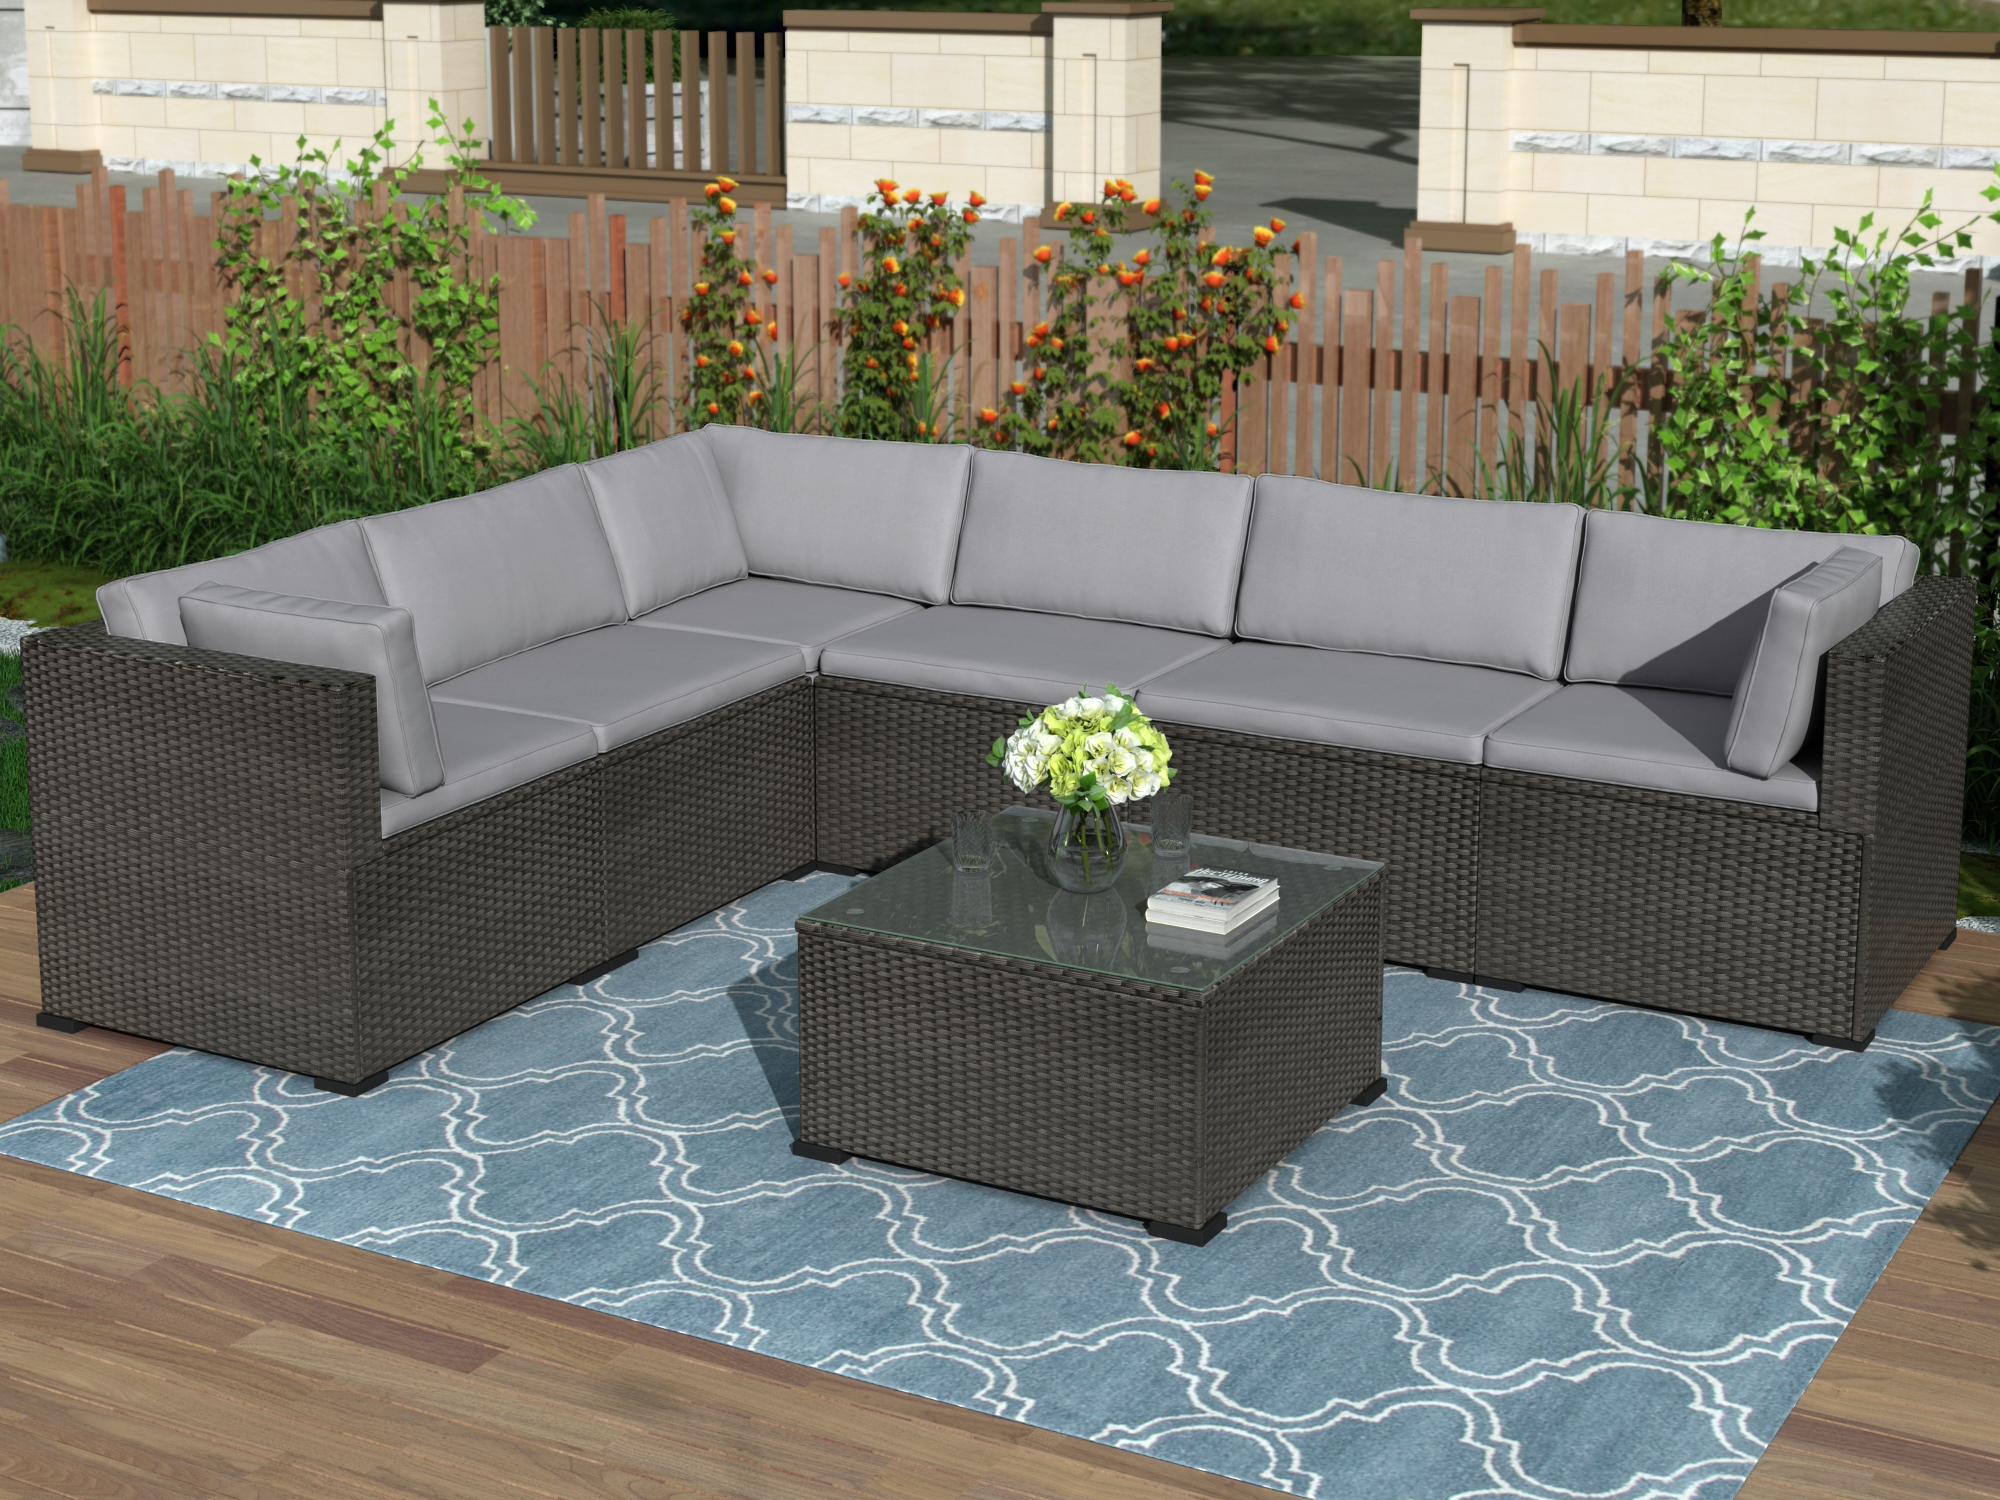 patio furniture set outdoor sectional conversation set 7 pcs outdoor furniture set with soft cushions coffee table modern all weather wicker